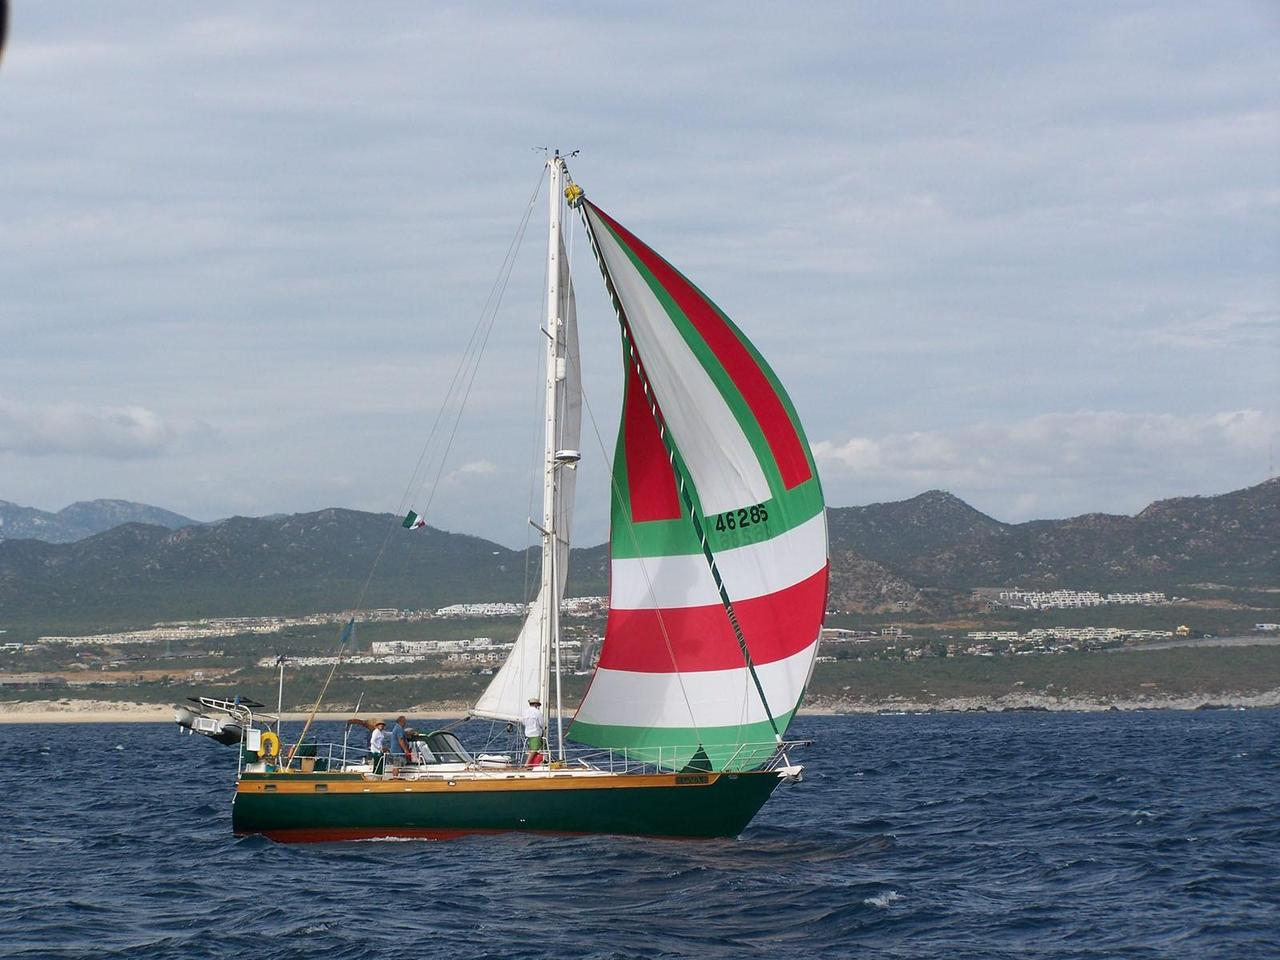 1987 Used Liberty 458 Cruiser Sailboat For Sale - $150,000